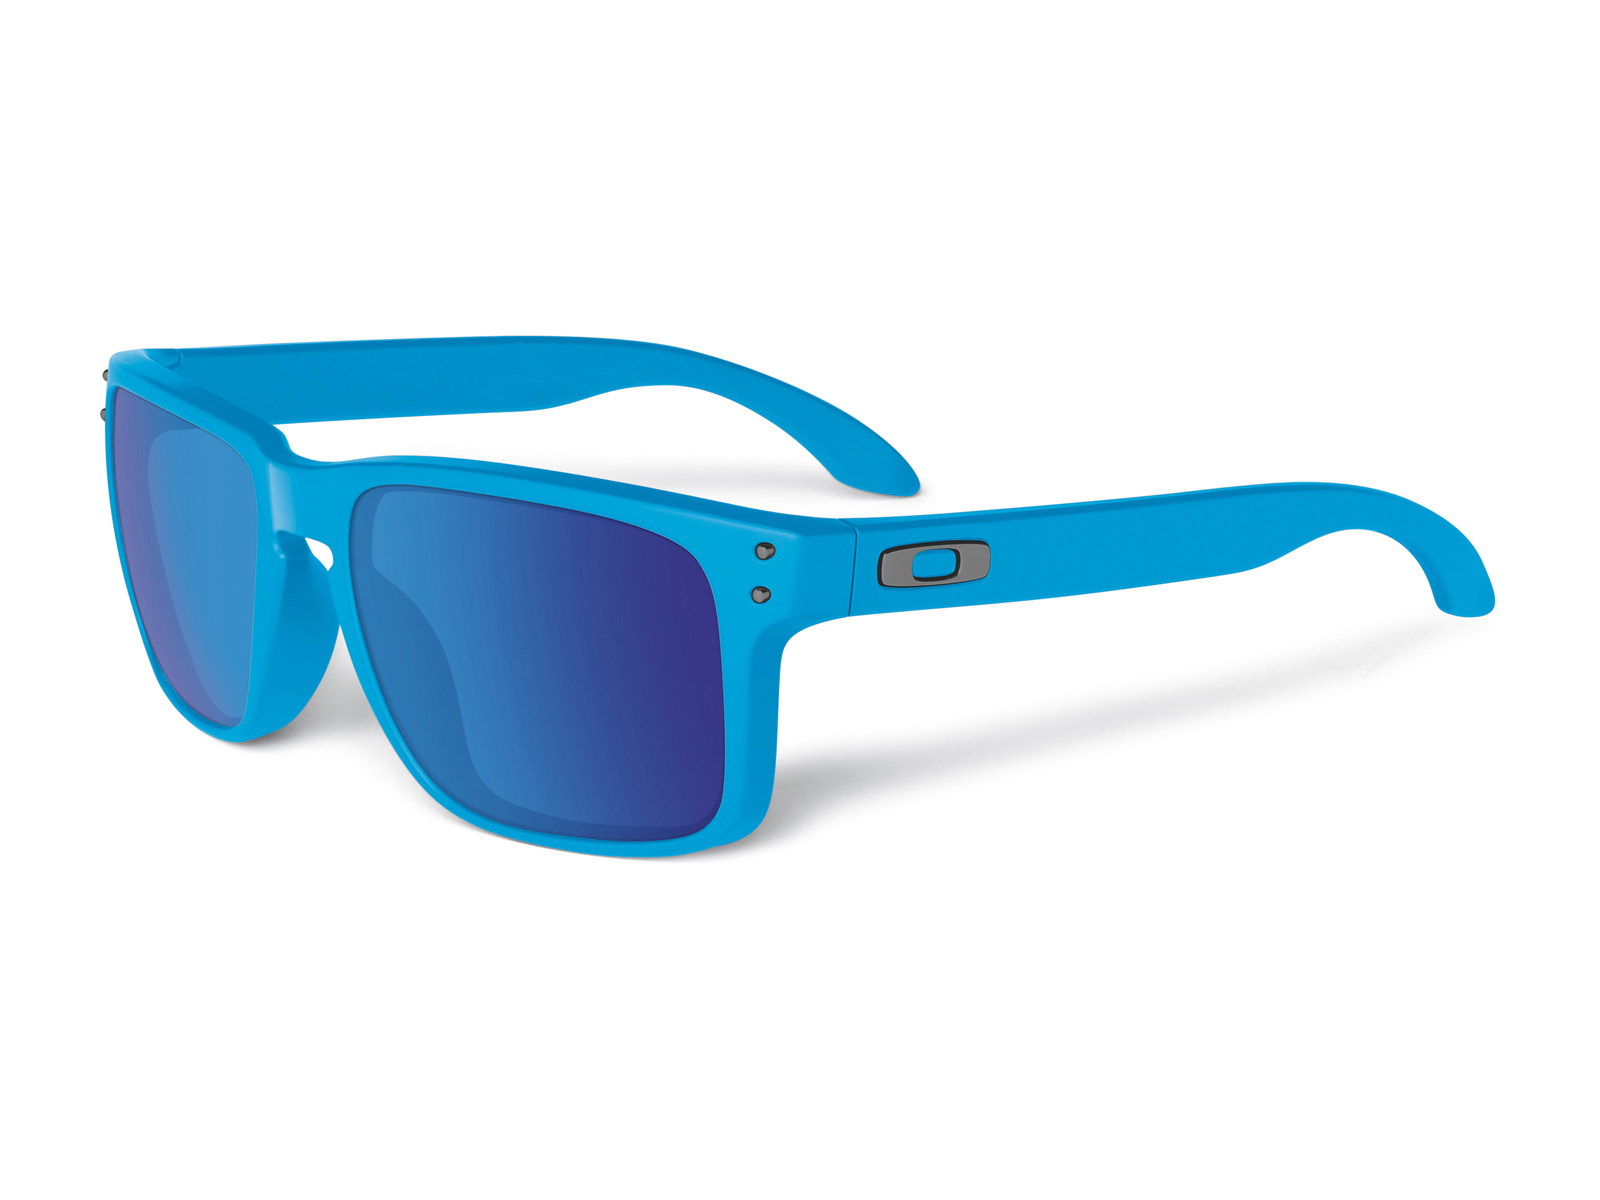 1600x1200 Oakley Holbrook Heaven Amp Earth Collection, Matte Skysapphire